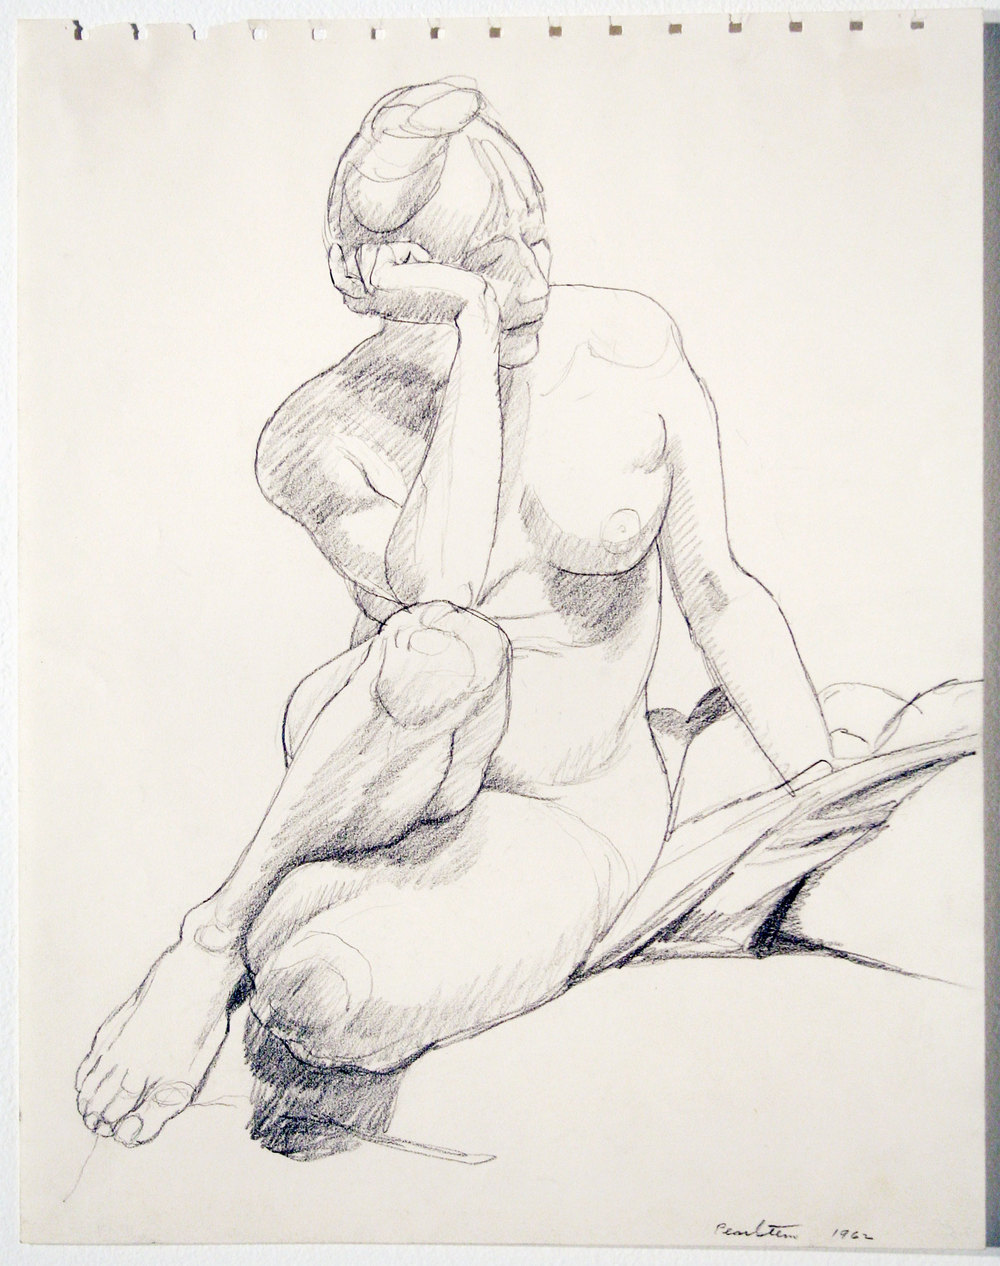 SEATED NUDE , 1962 Pencil on paper 13 3/4 x 10 3/4 inches